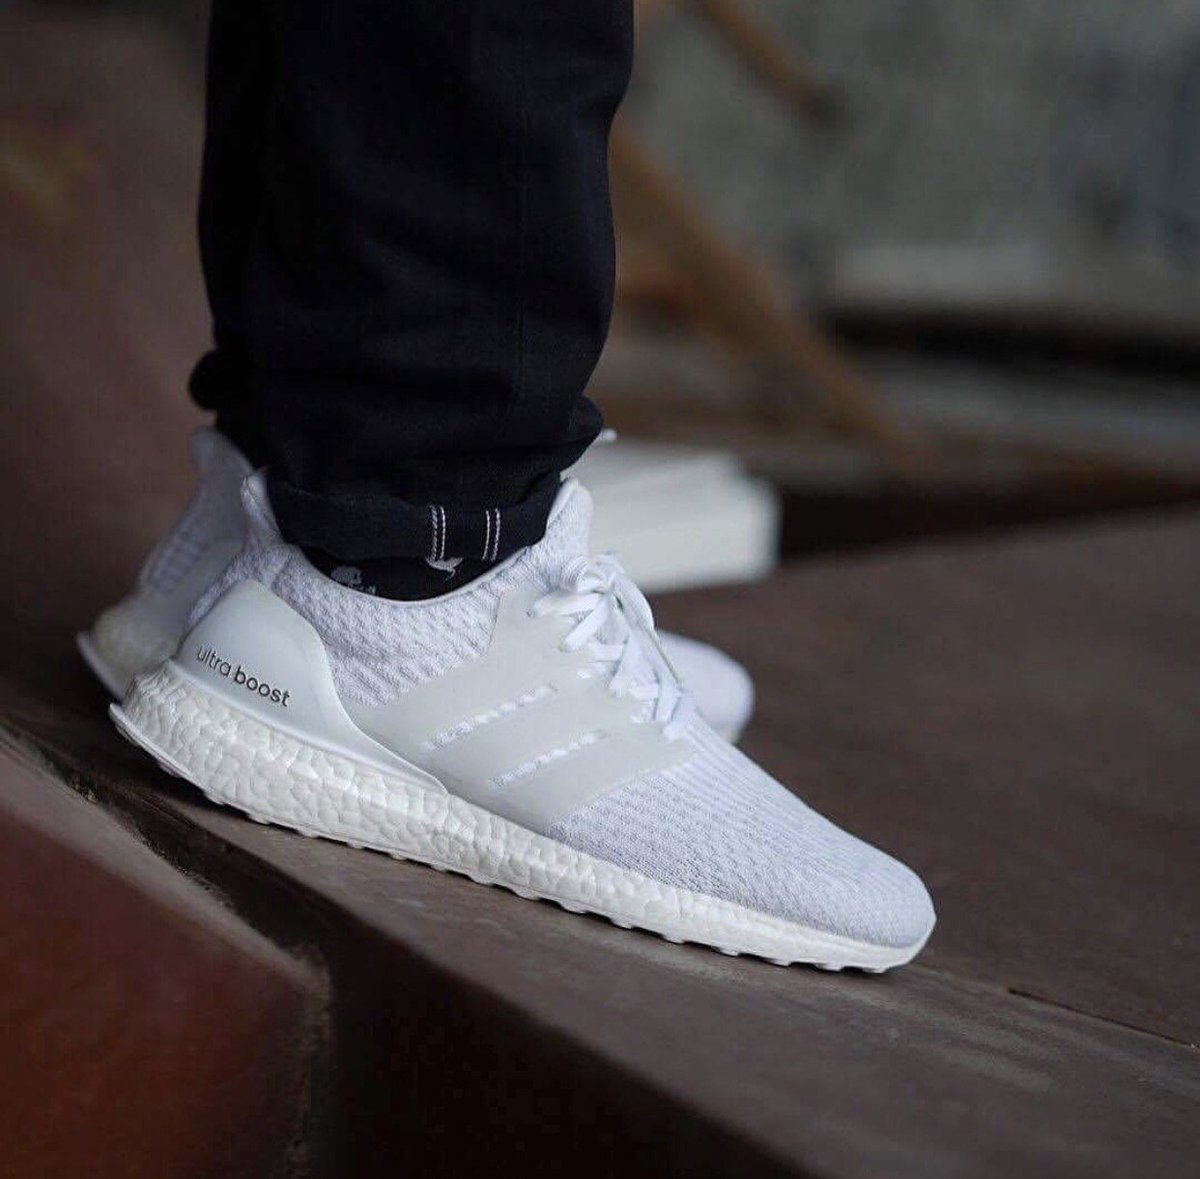 Free Delivery Adidas ace 16 purecontrol ultra boost shoes white